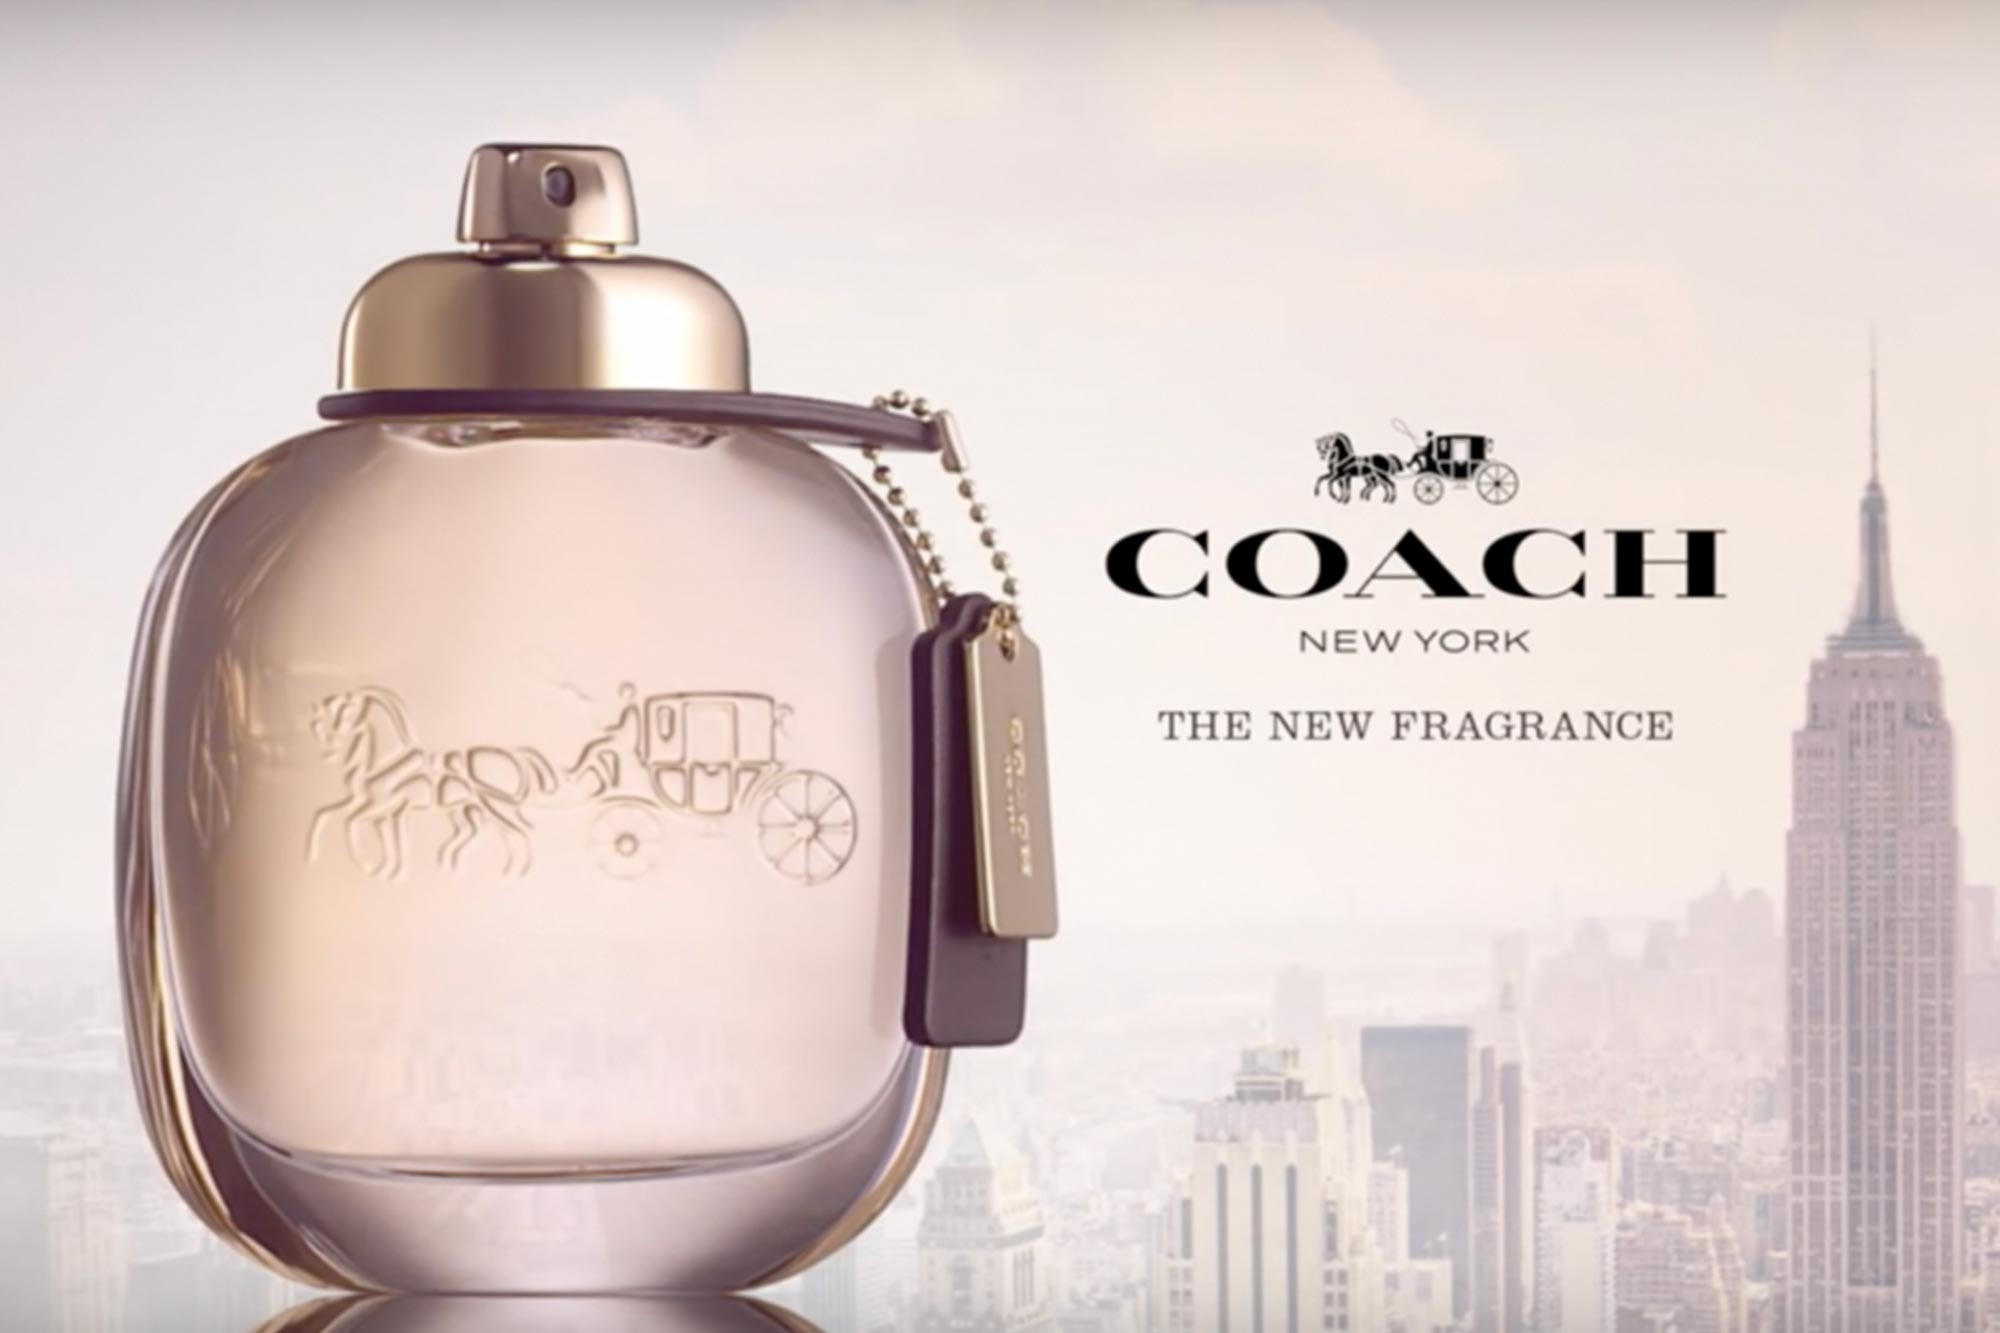 Coach New York — The New Fragrance